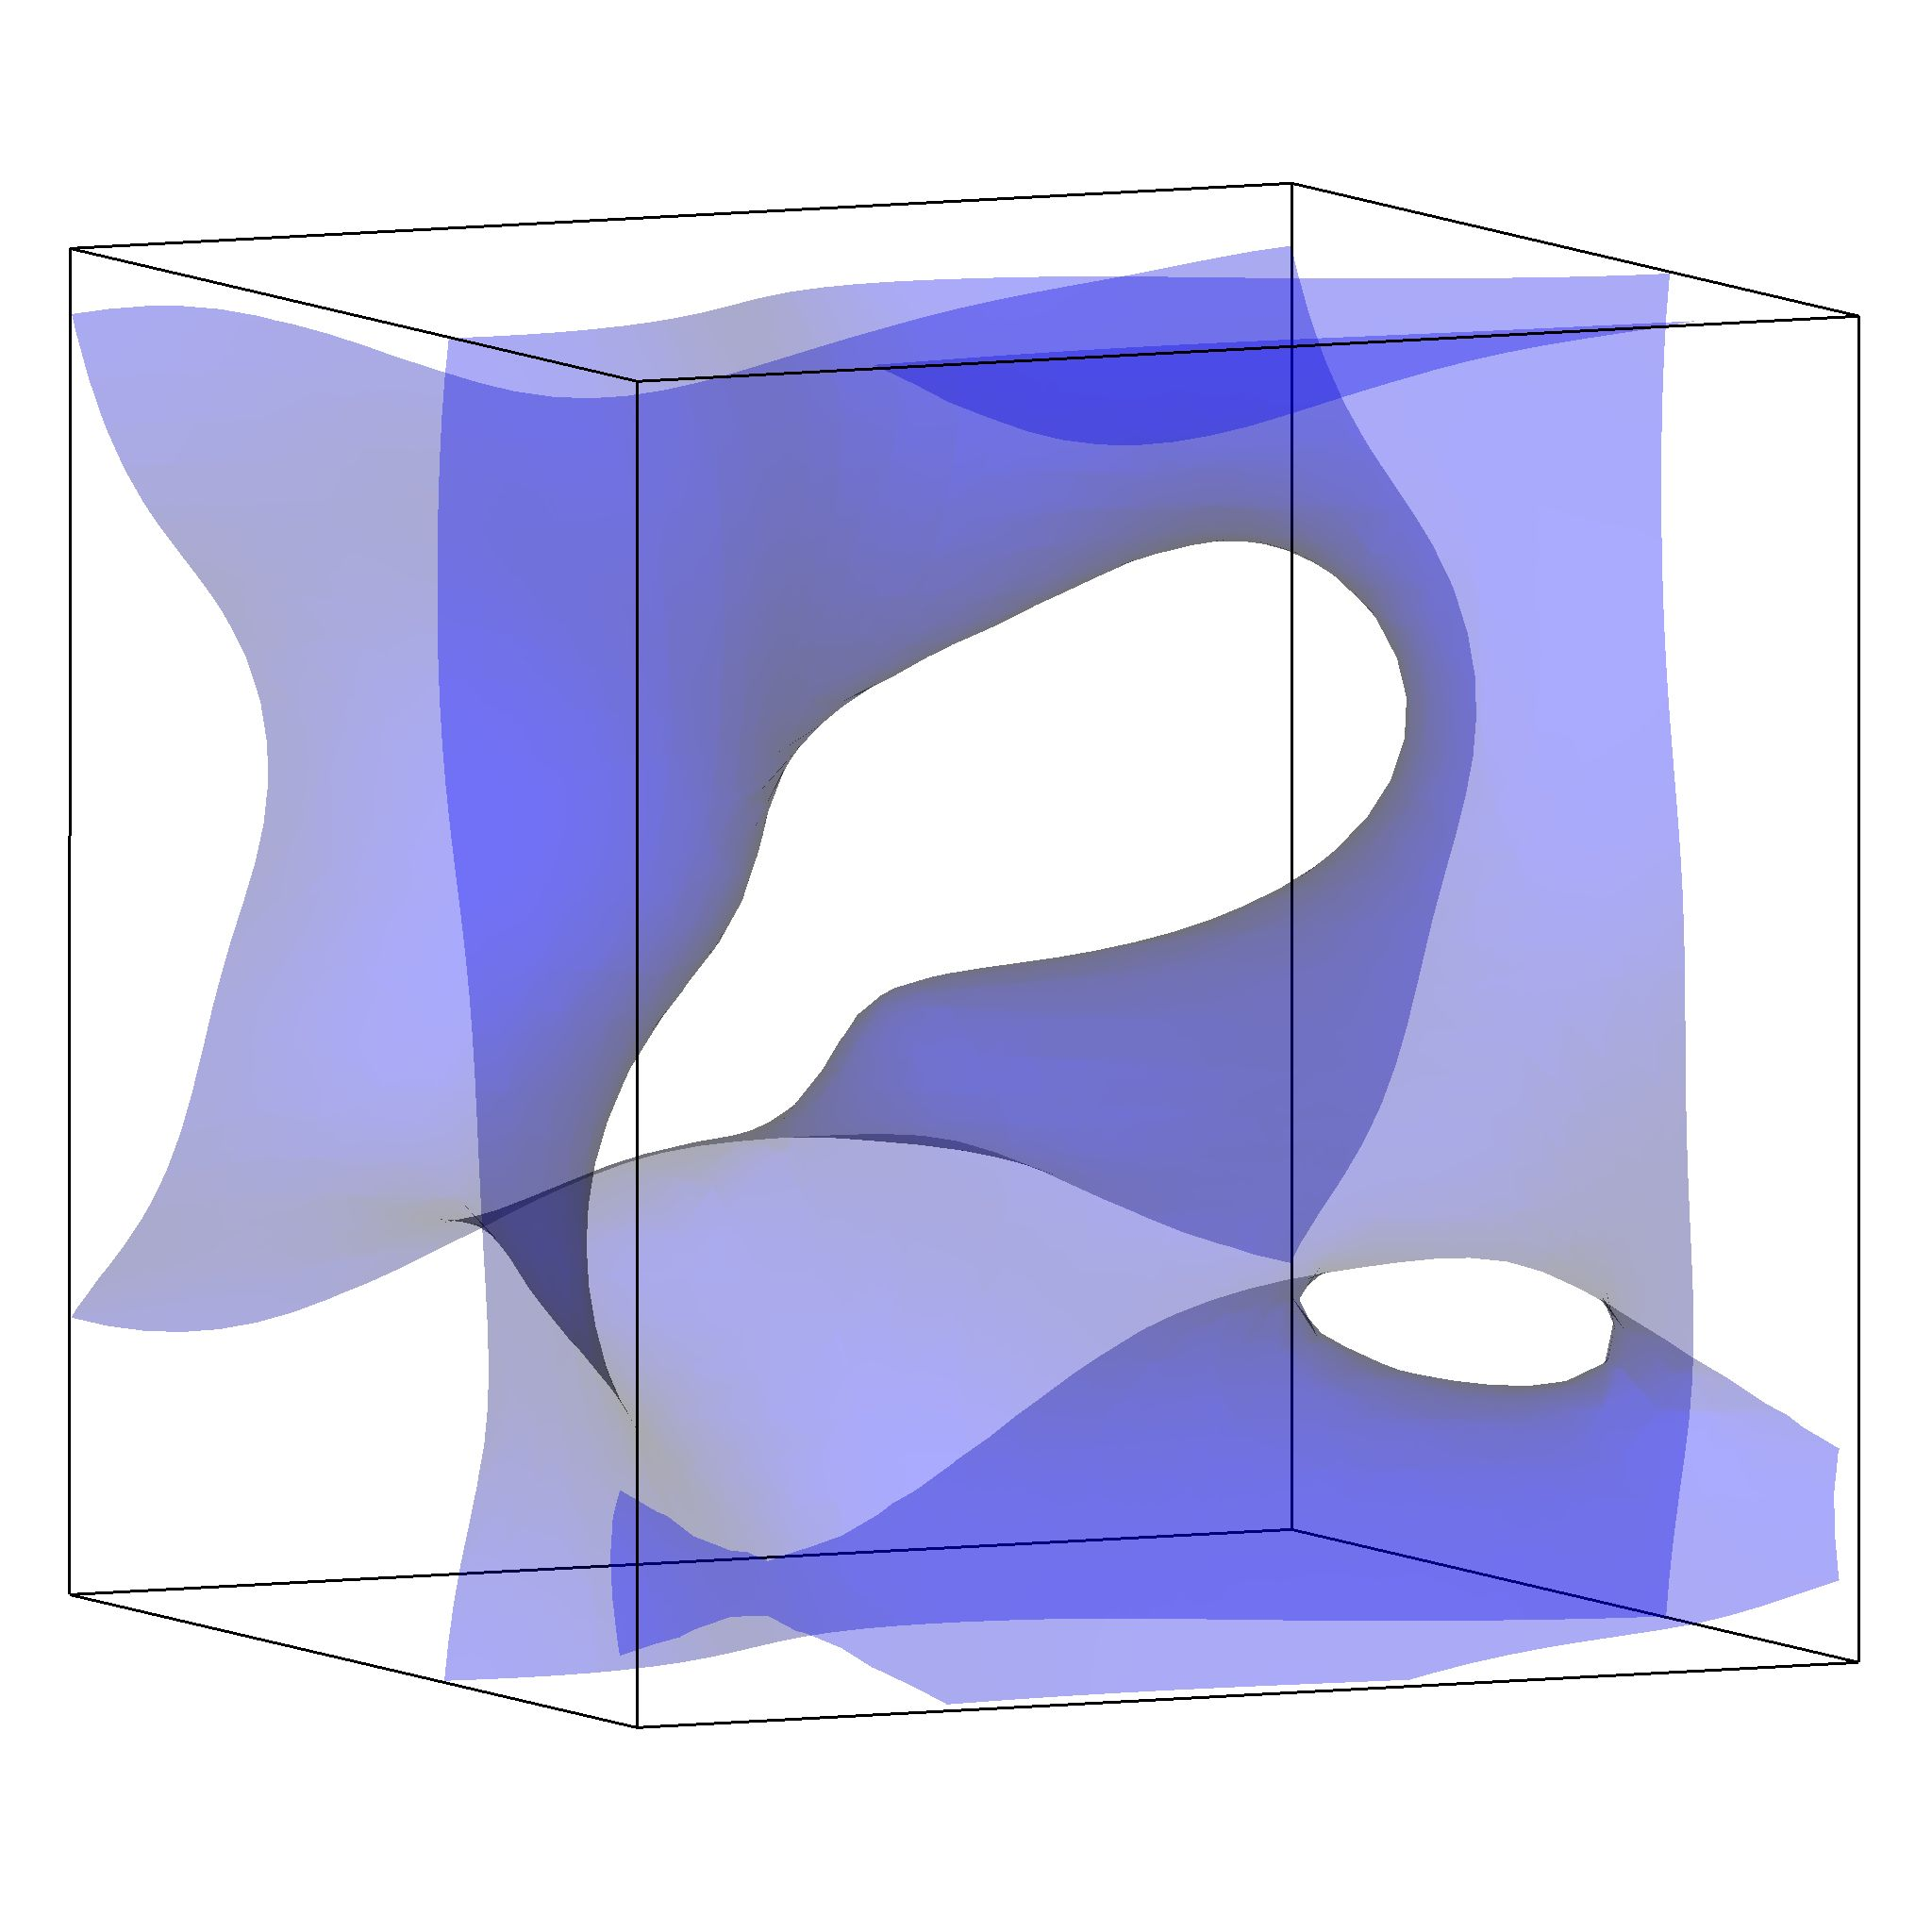 Visualisation of a smooth isosurface in VisIt without ghost zones.